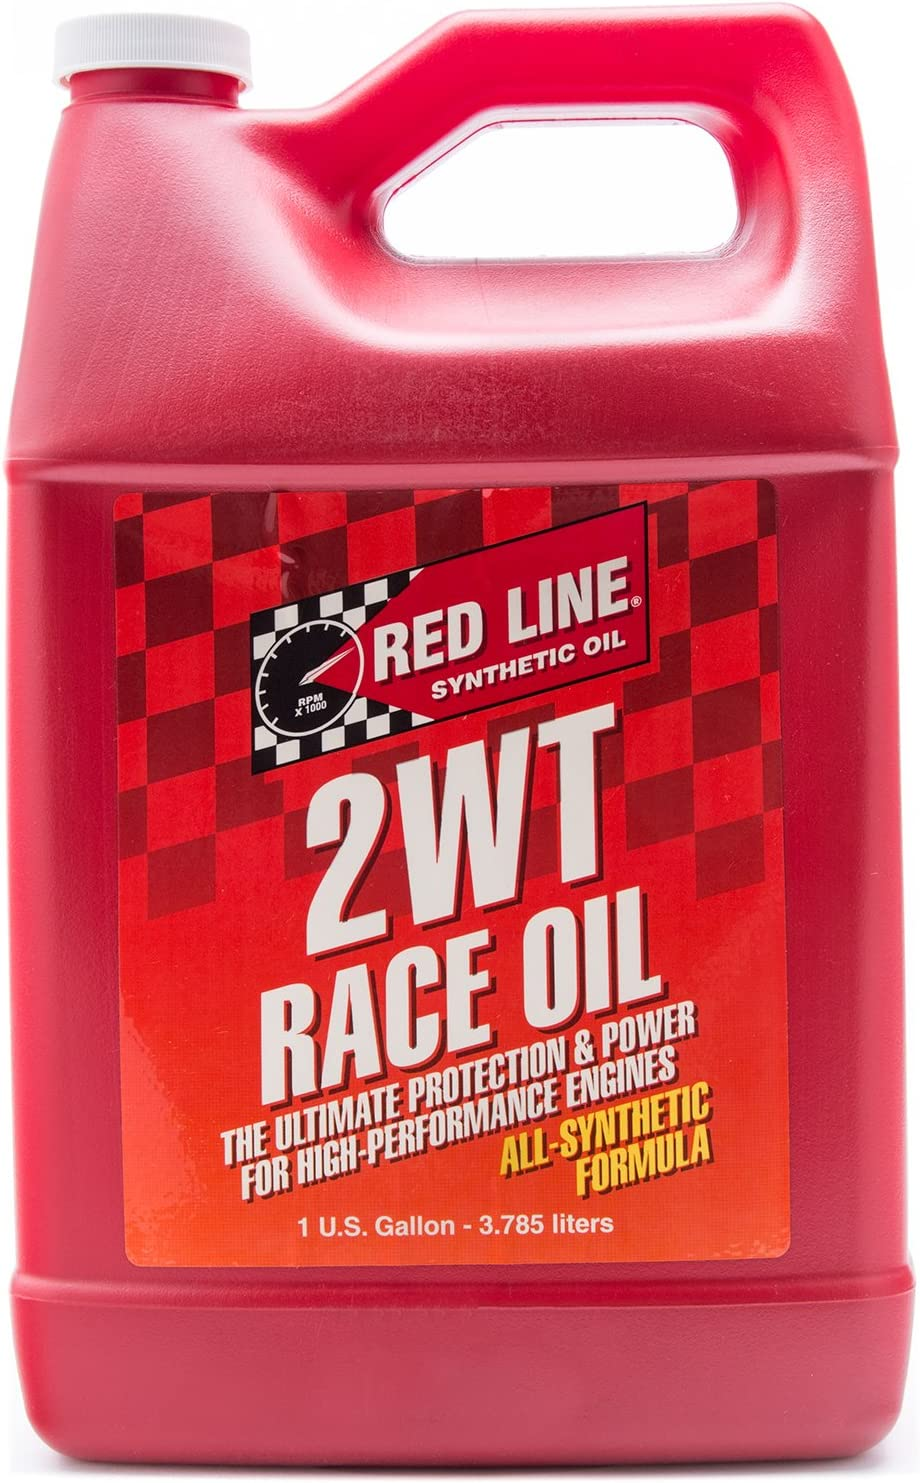 Red Line Max 51% OFF 10205 20WT Race gallon Oil jugs - Special Campaign 1